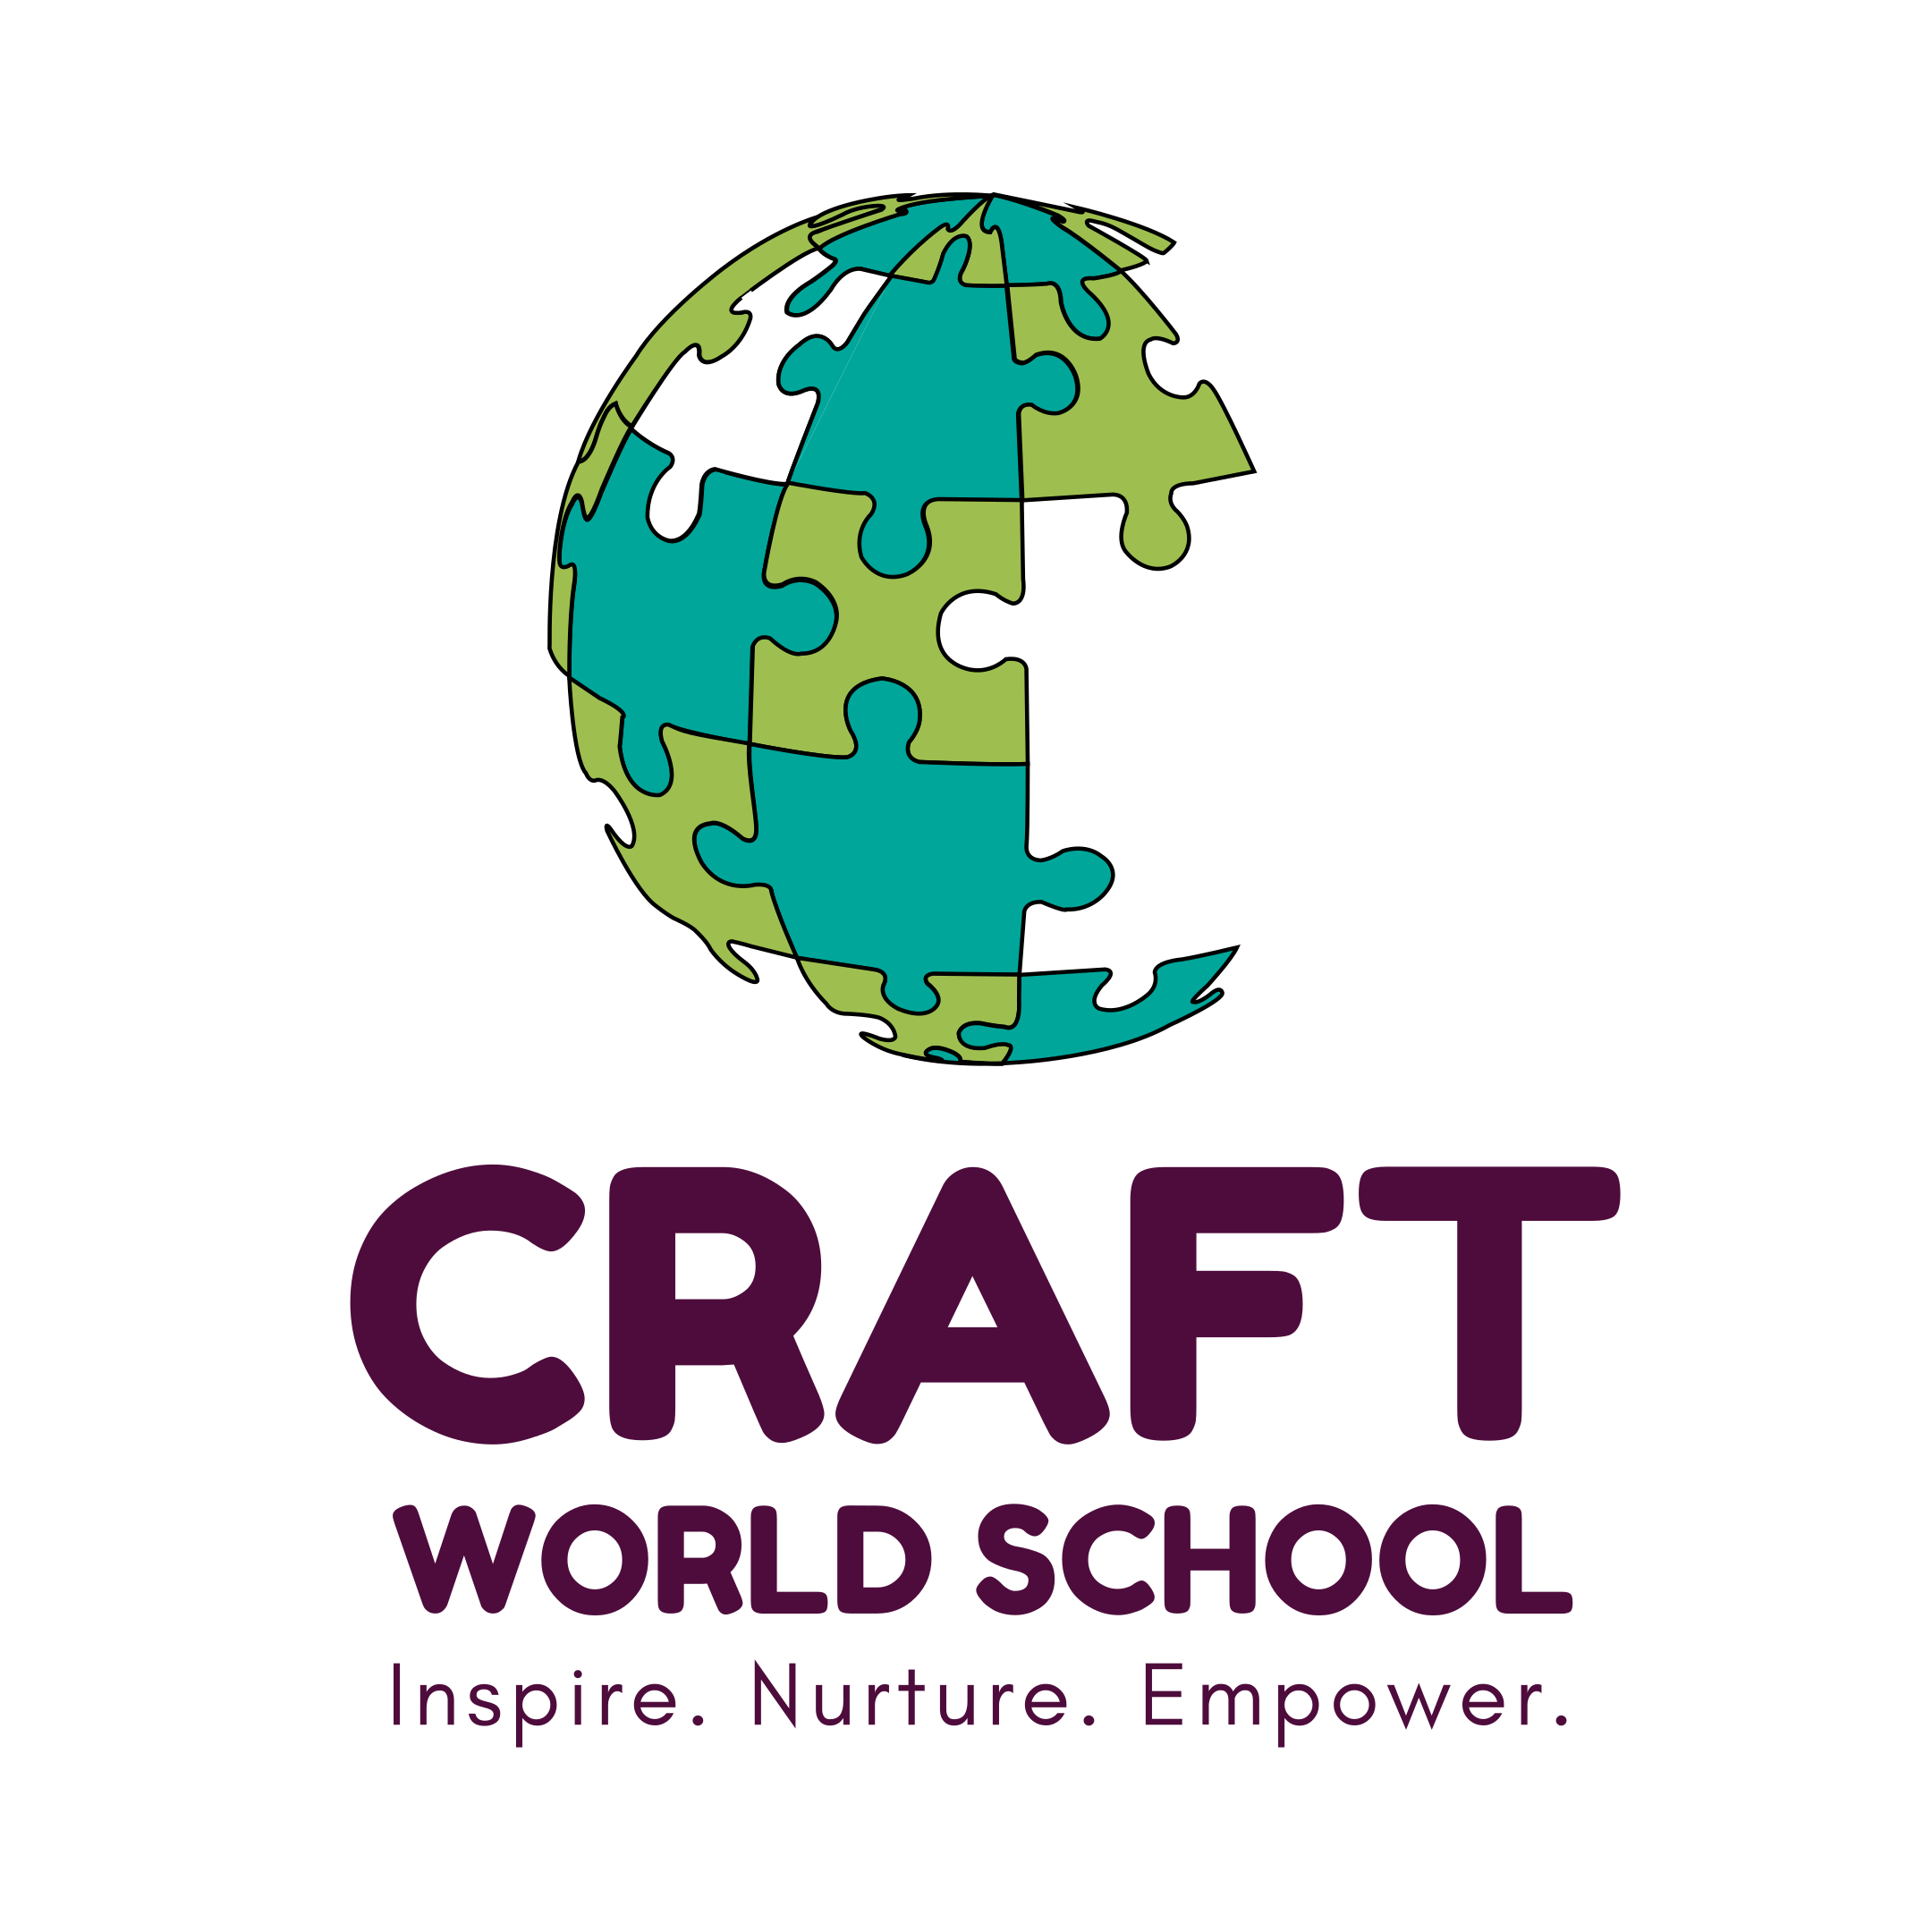 CRAFT WORLD SCHOOL